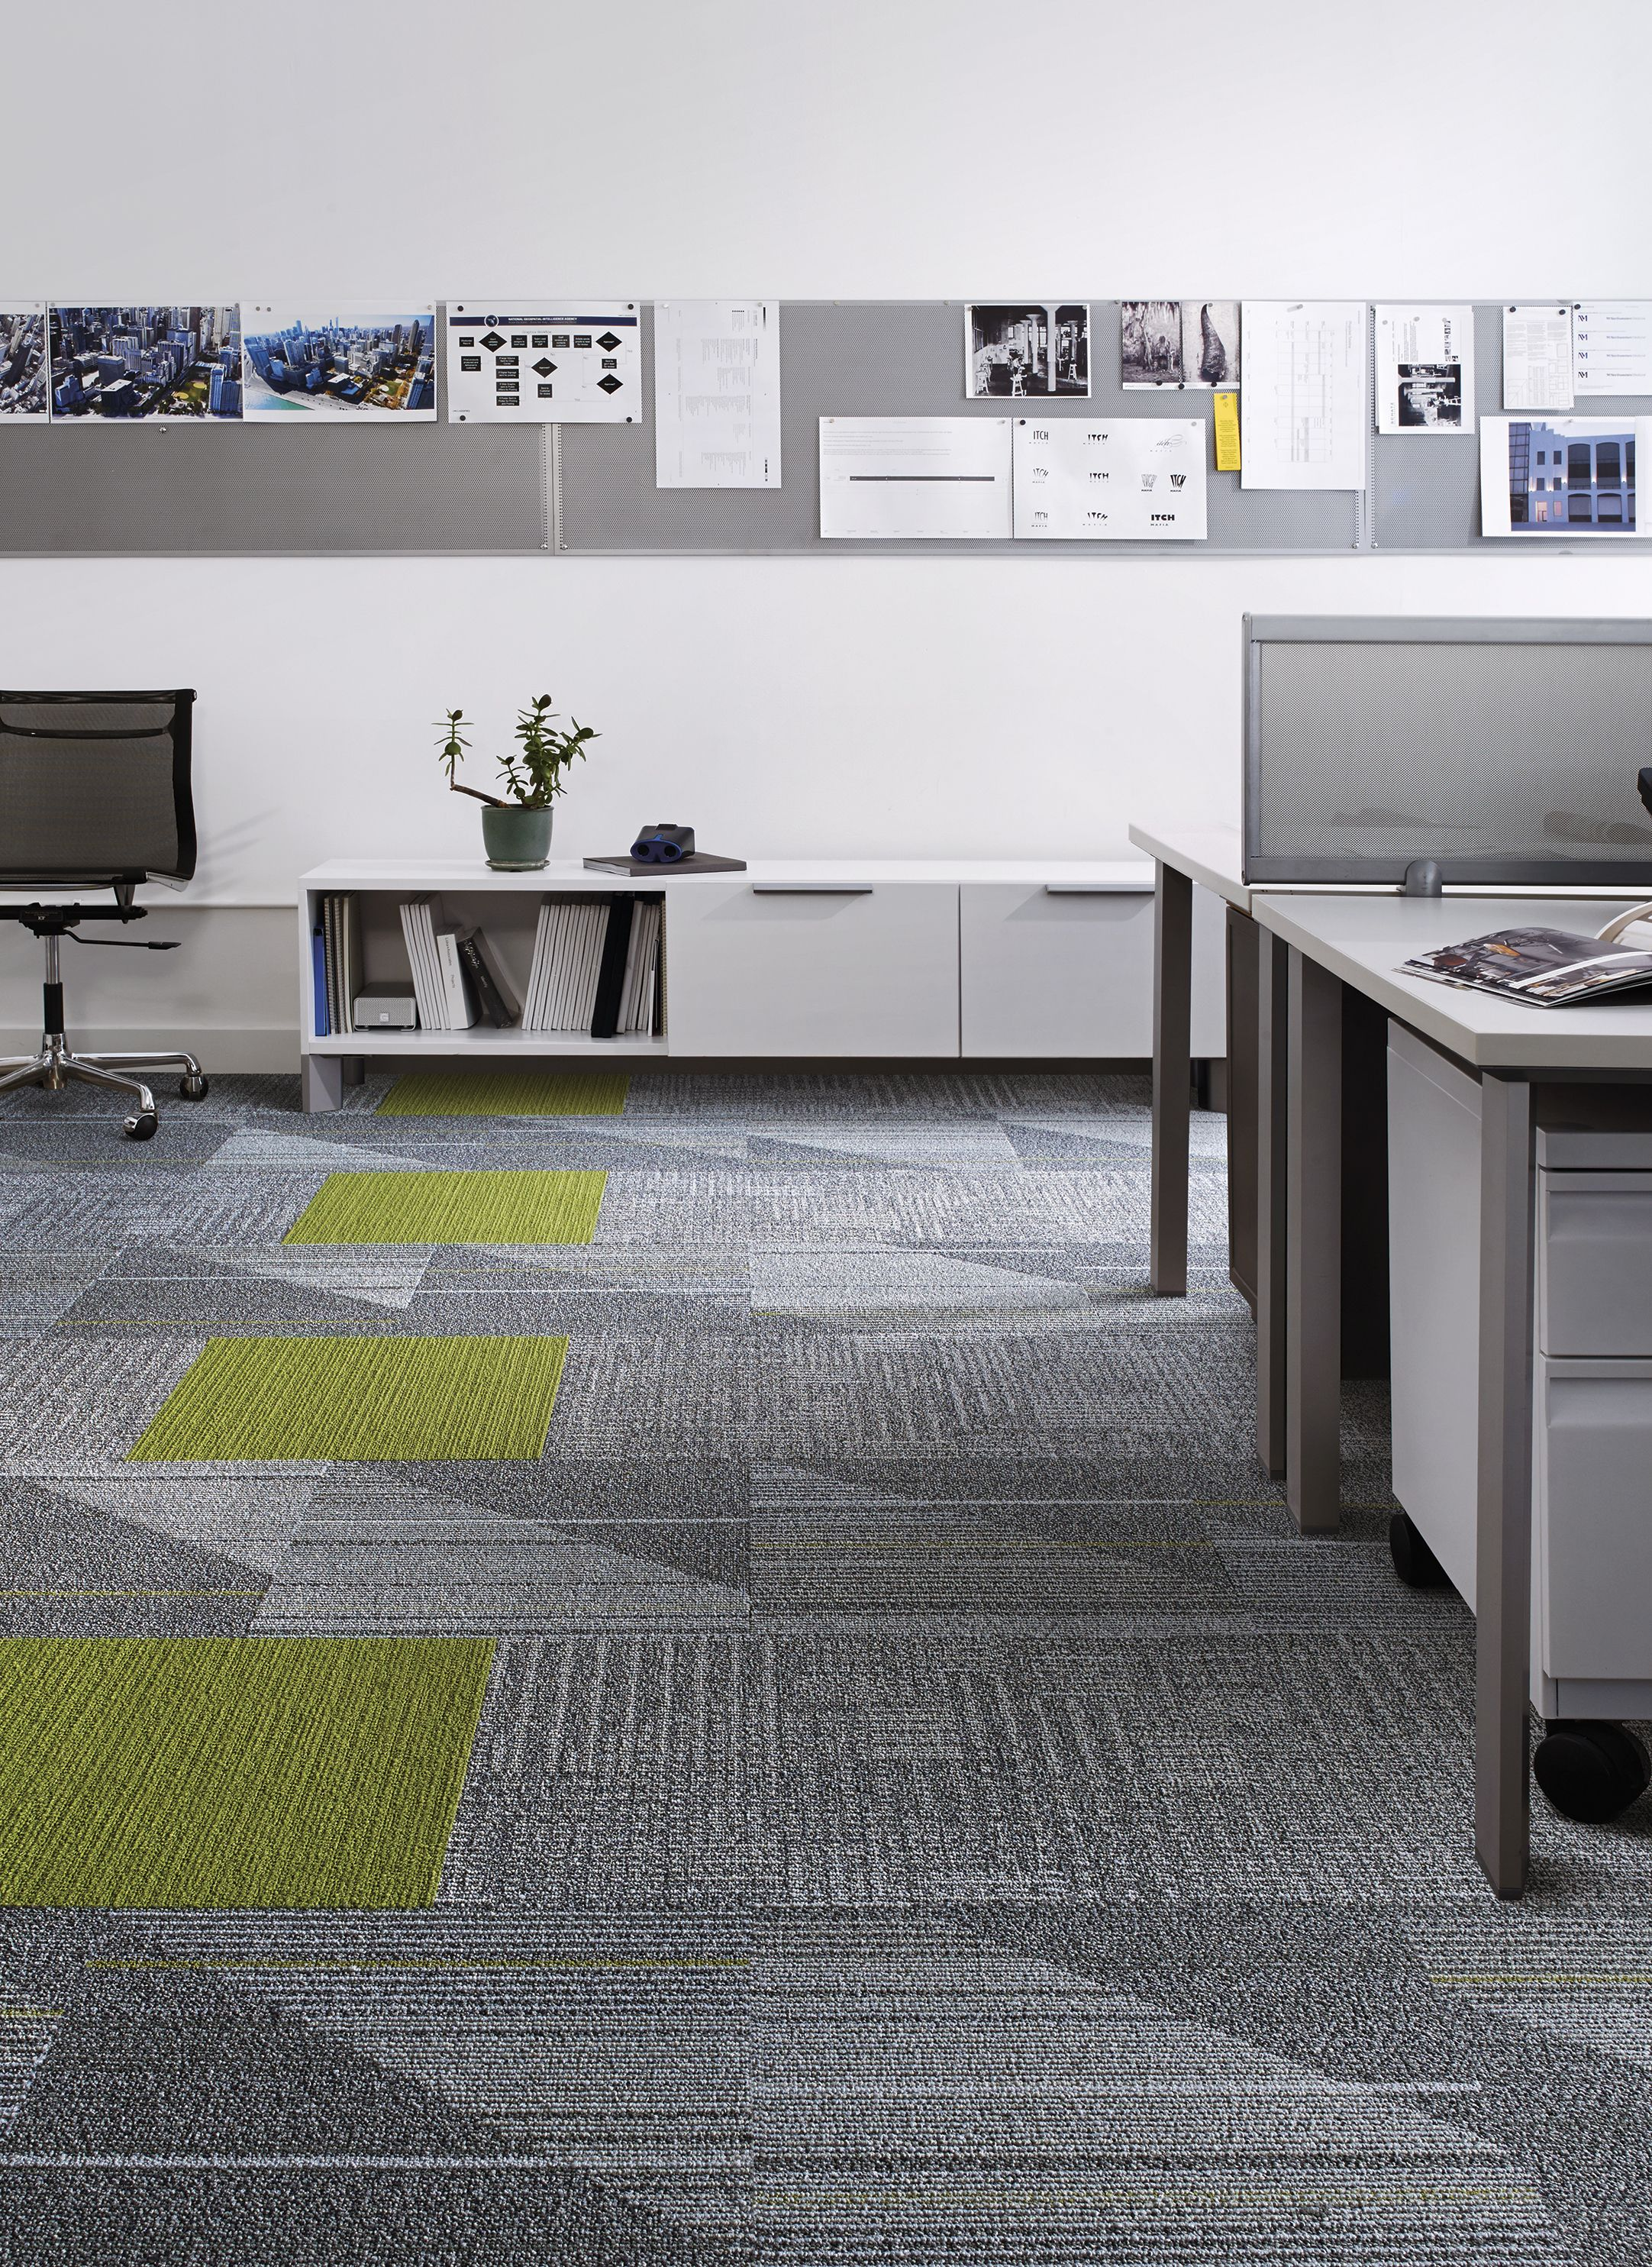 Interface modular carpet tile detours pewter ct101 pewter interface modular carpet tile detours pewter ct101 pewter viva colores verde primavera in open public office the green accents in the floor helps baanklon Image collections